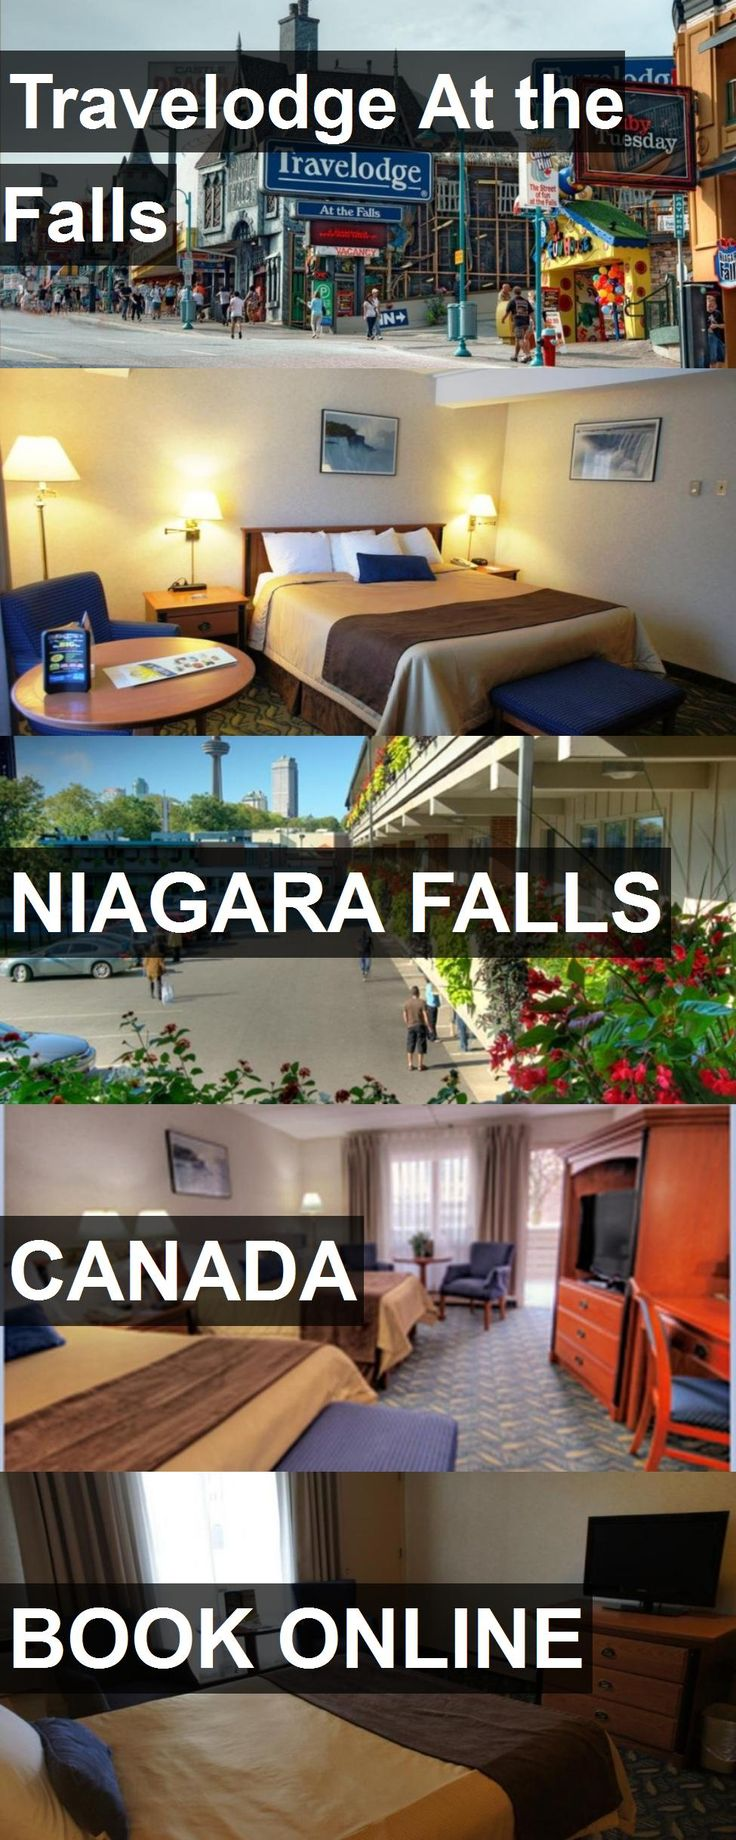 Hotel Travelodge At the Falls in Niagara Falls, Canada. For more information, photos, reviews and best prices please follow the link. #Canada #NiagaraFalls #TravelodgeAttheFalls #hotel #travel #vacation